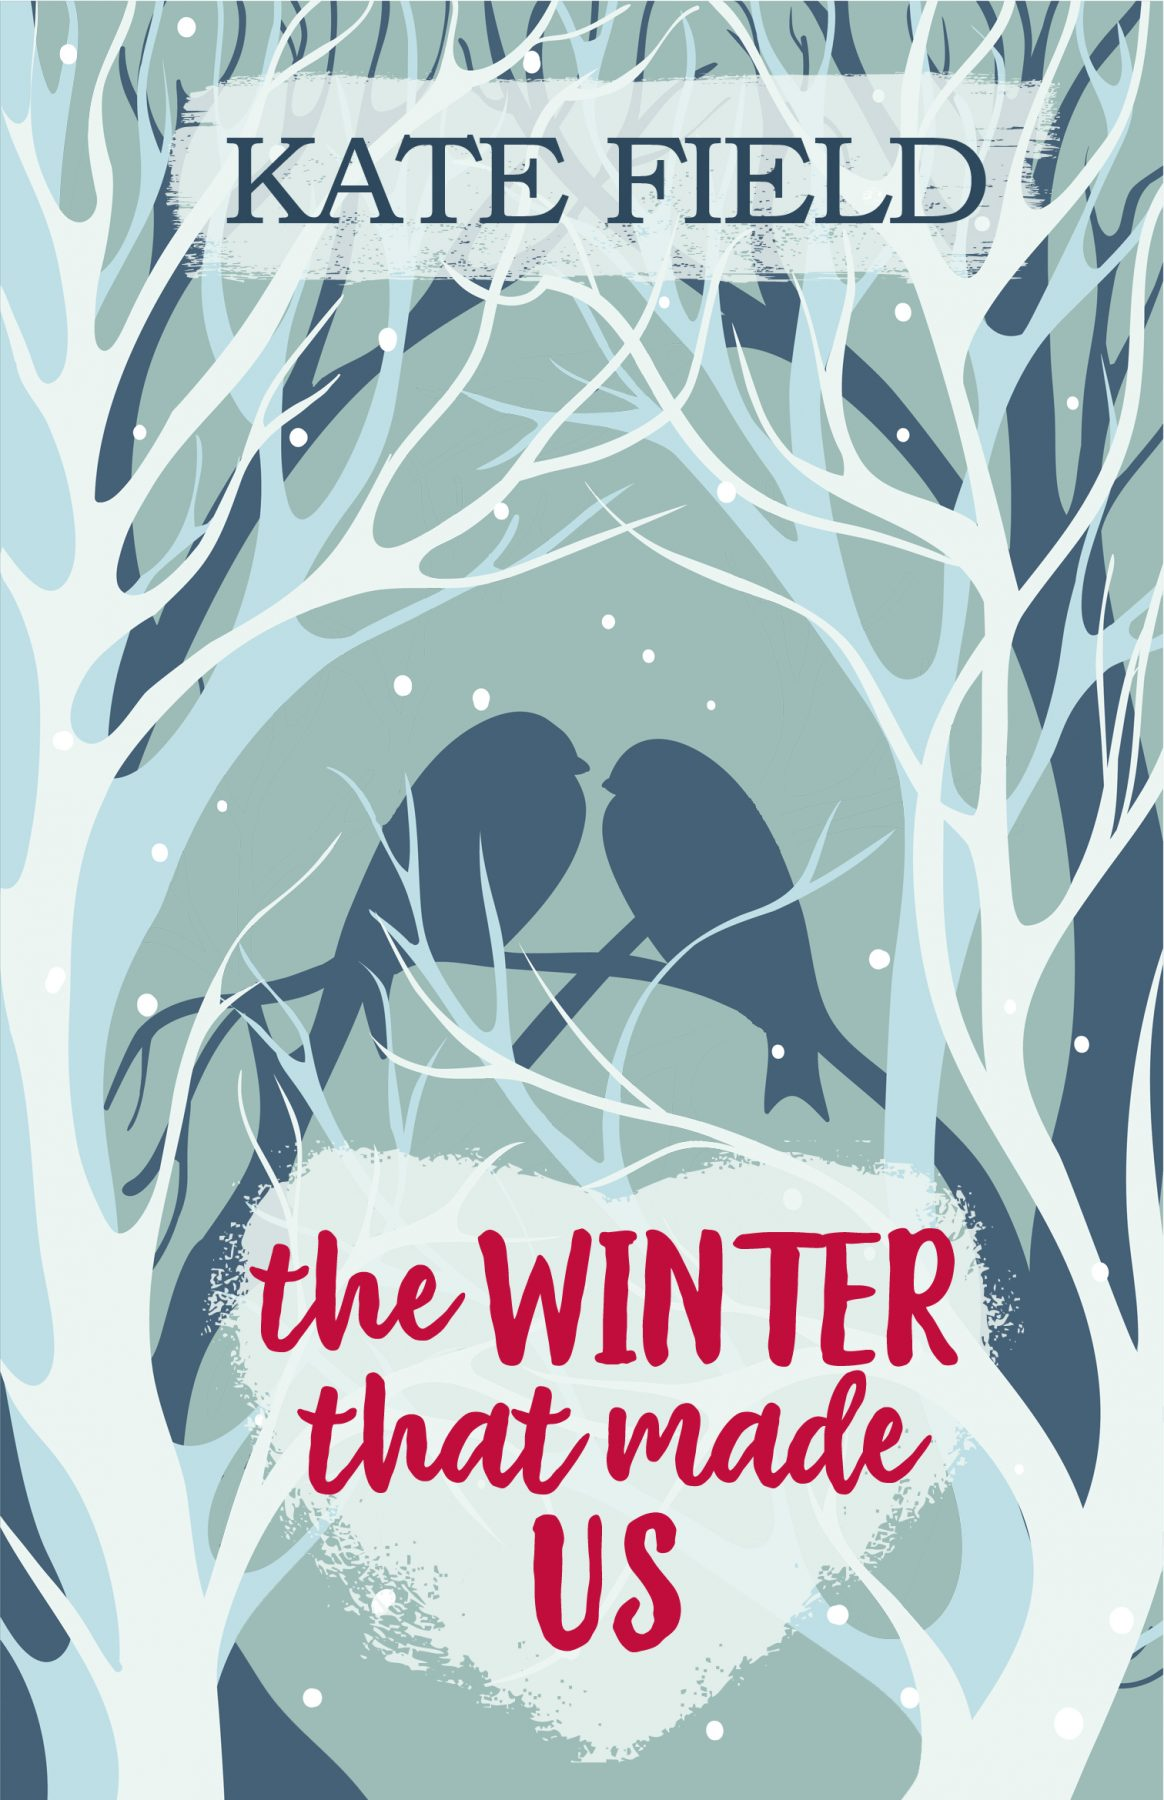 The Winter That Made Us